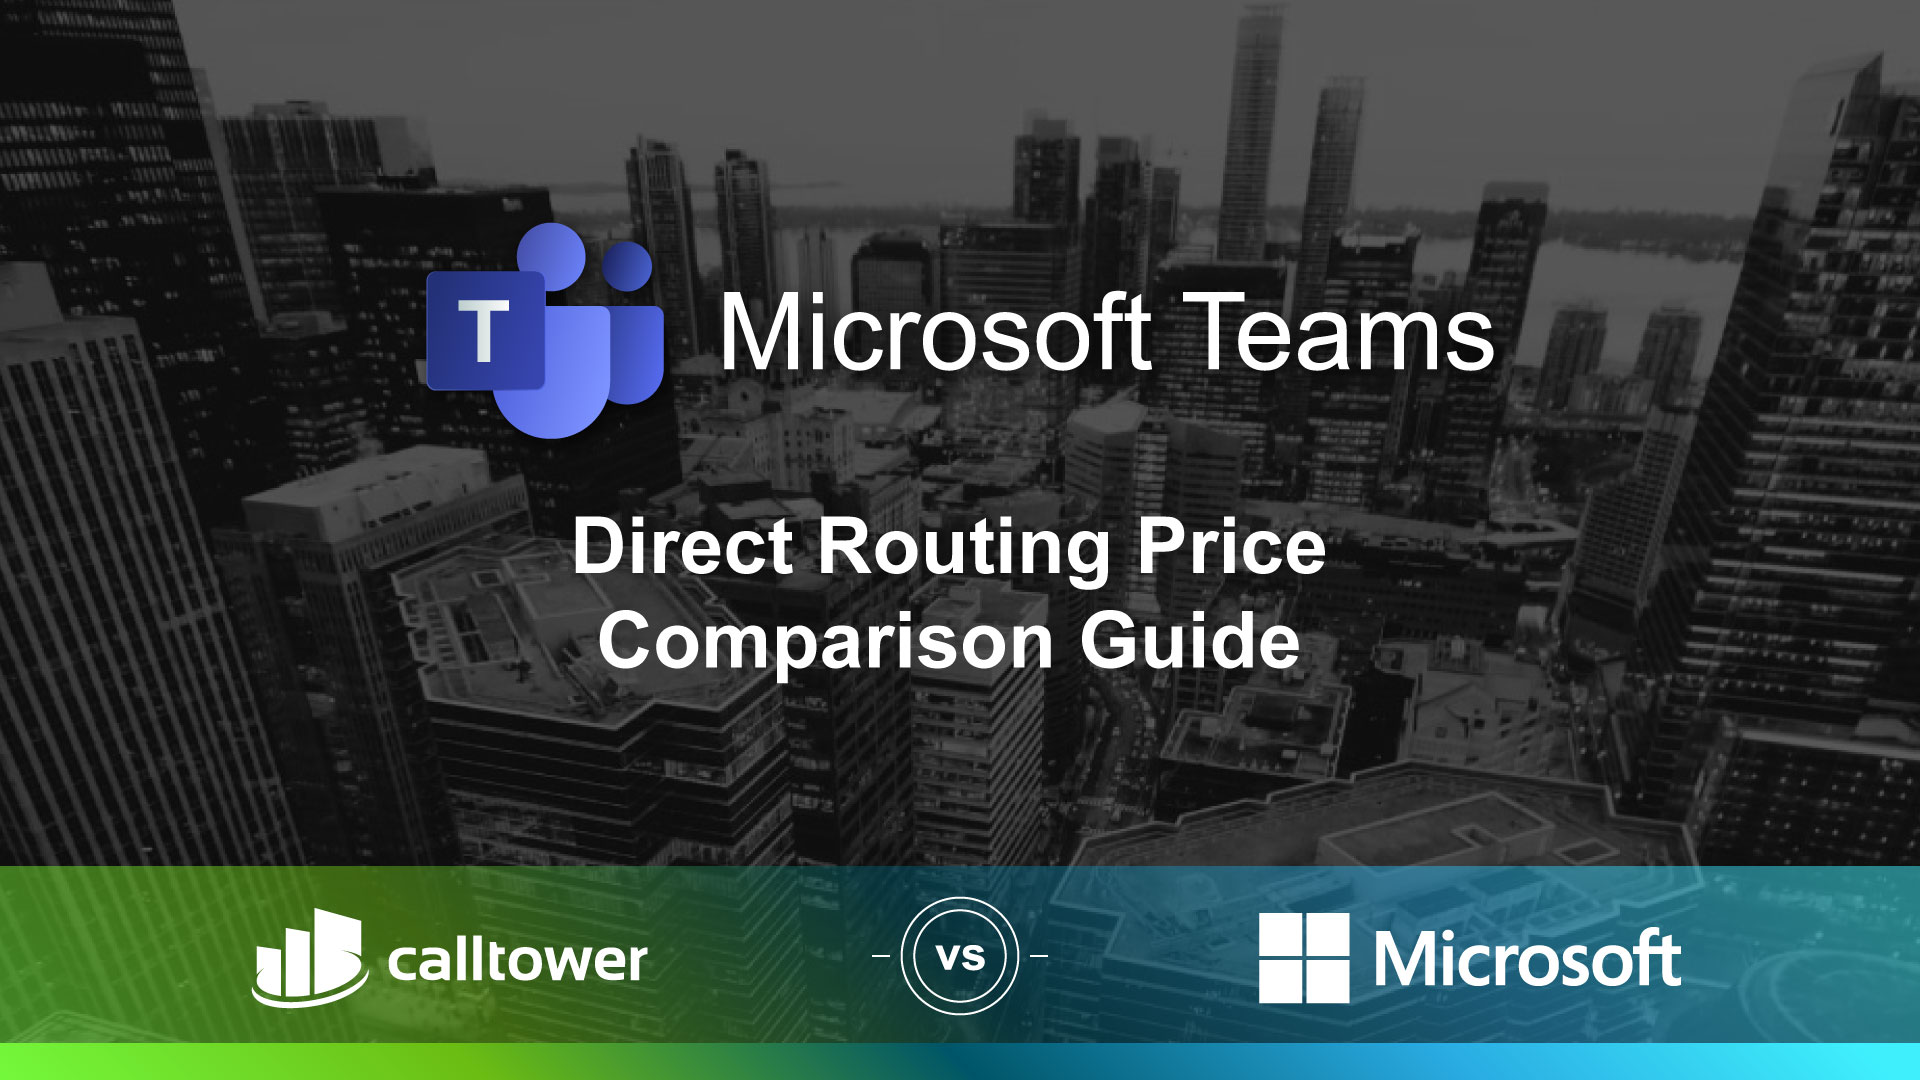 Microsoft Teams Direct Routing Price Comparison Guide